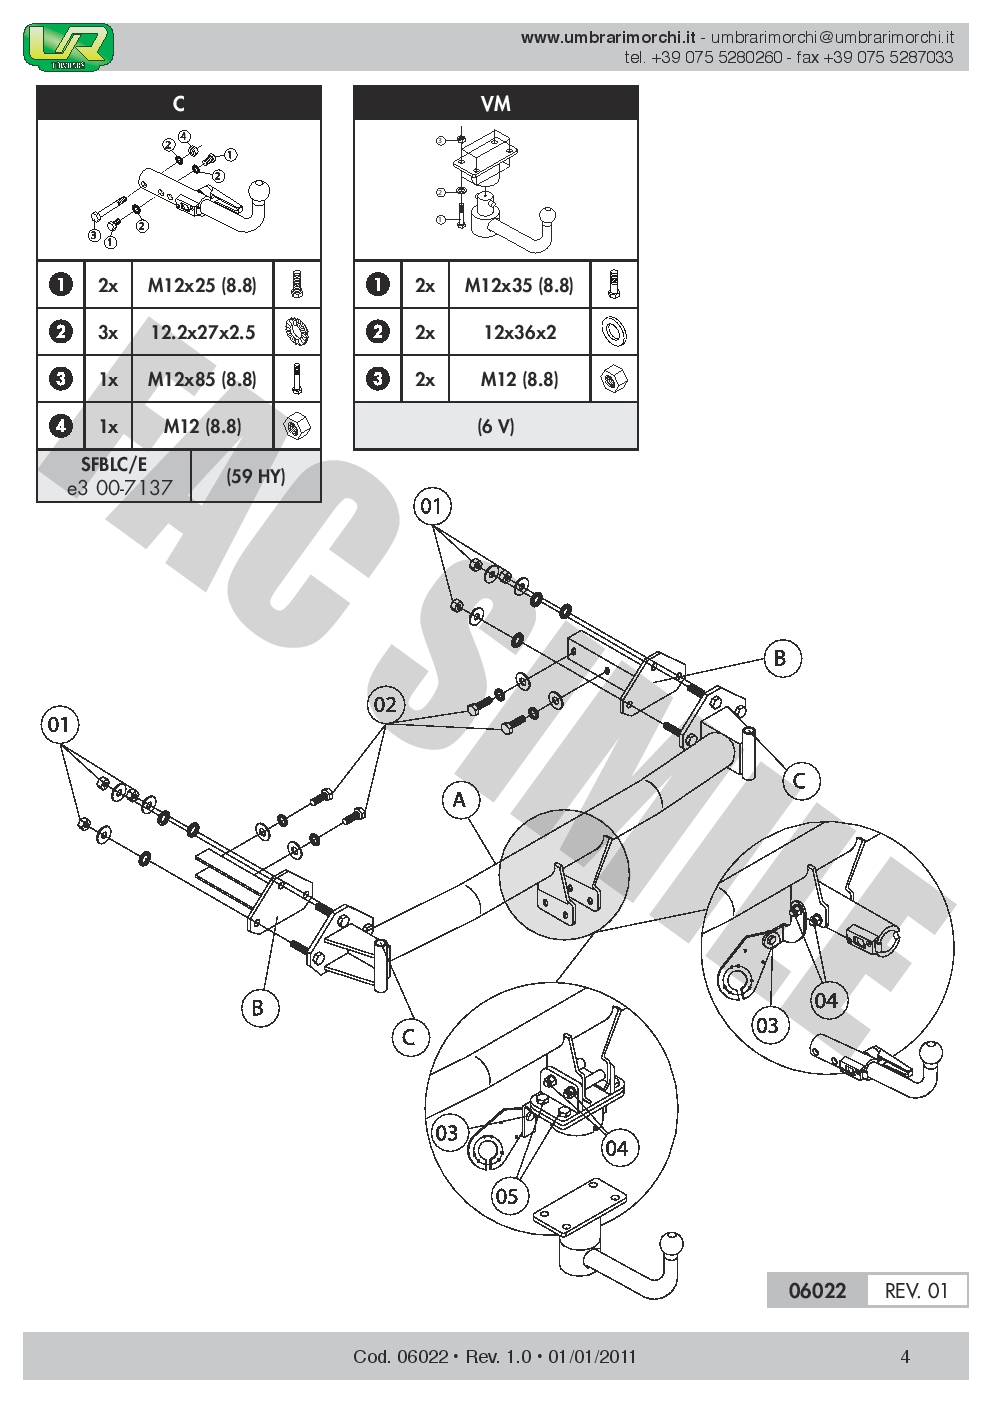 Detachable Towbar 13p C2 Wiring Kit For Bmw 3 Series Compact 2001 1 Of 2free Shipping 2005 0602 E1